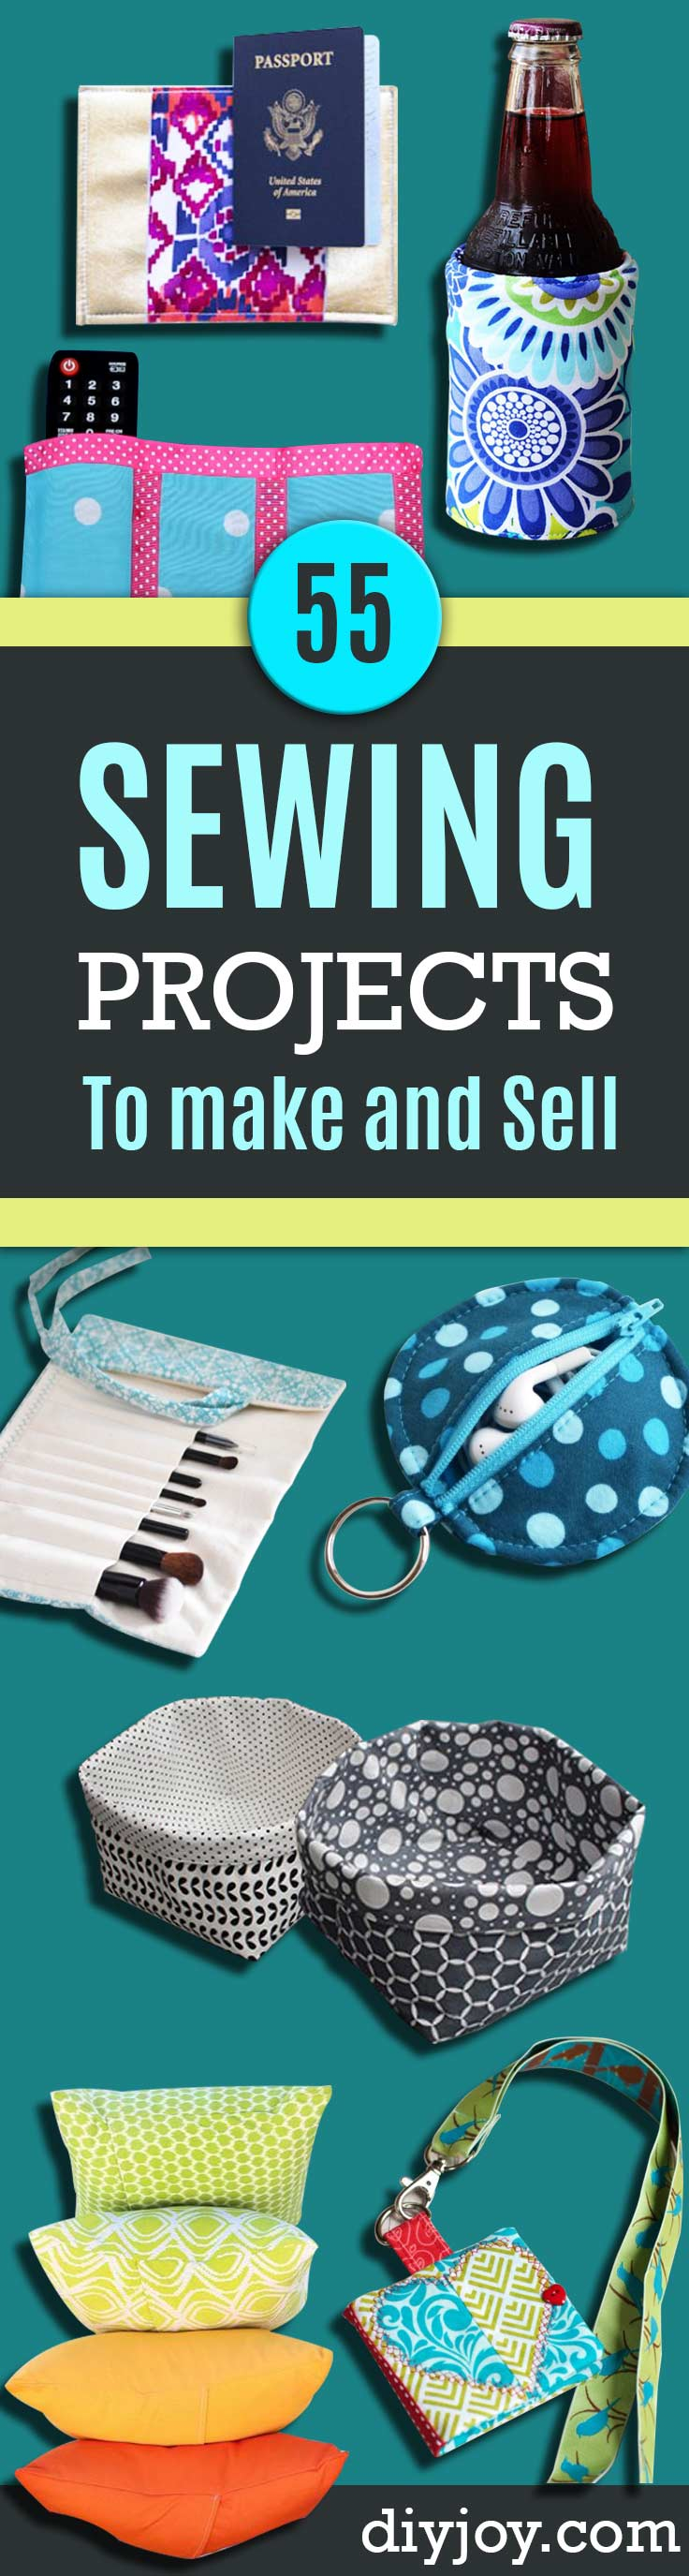 55 Sewing Projects To Make And Sell